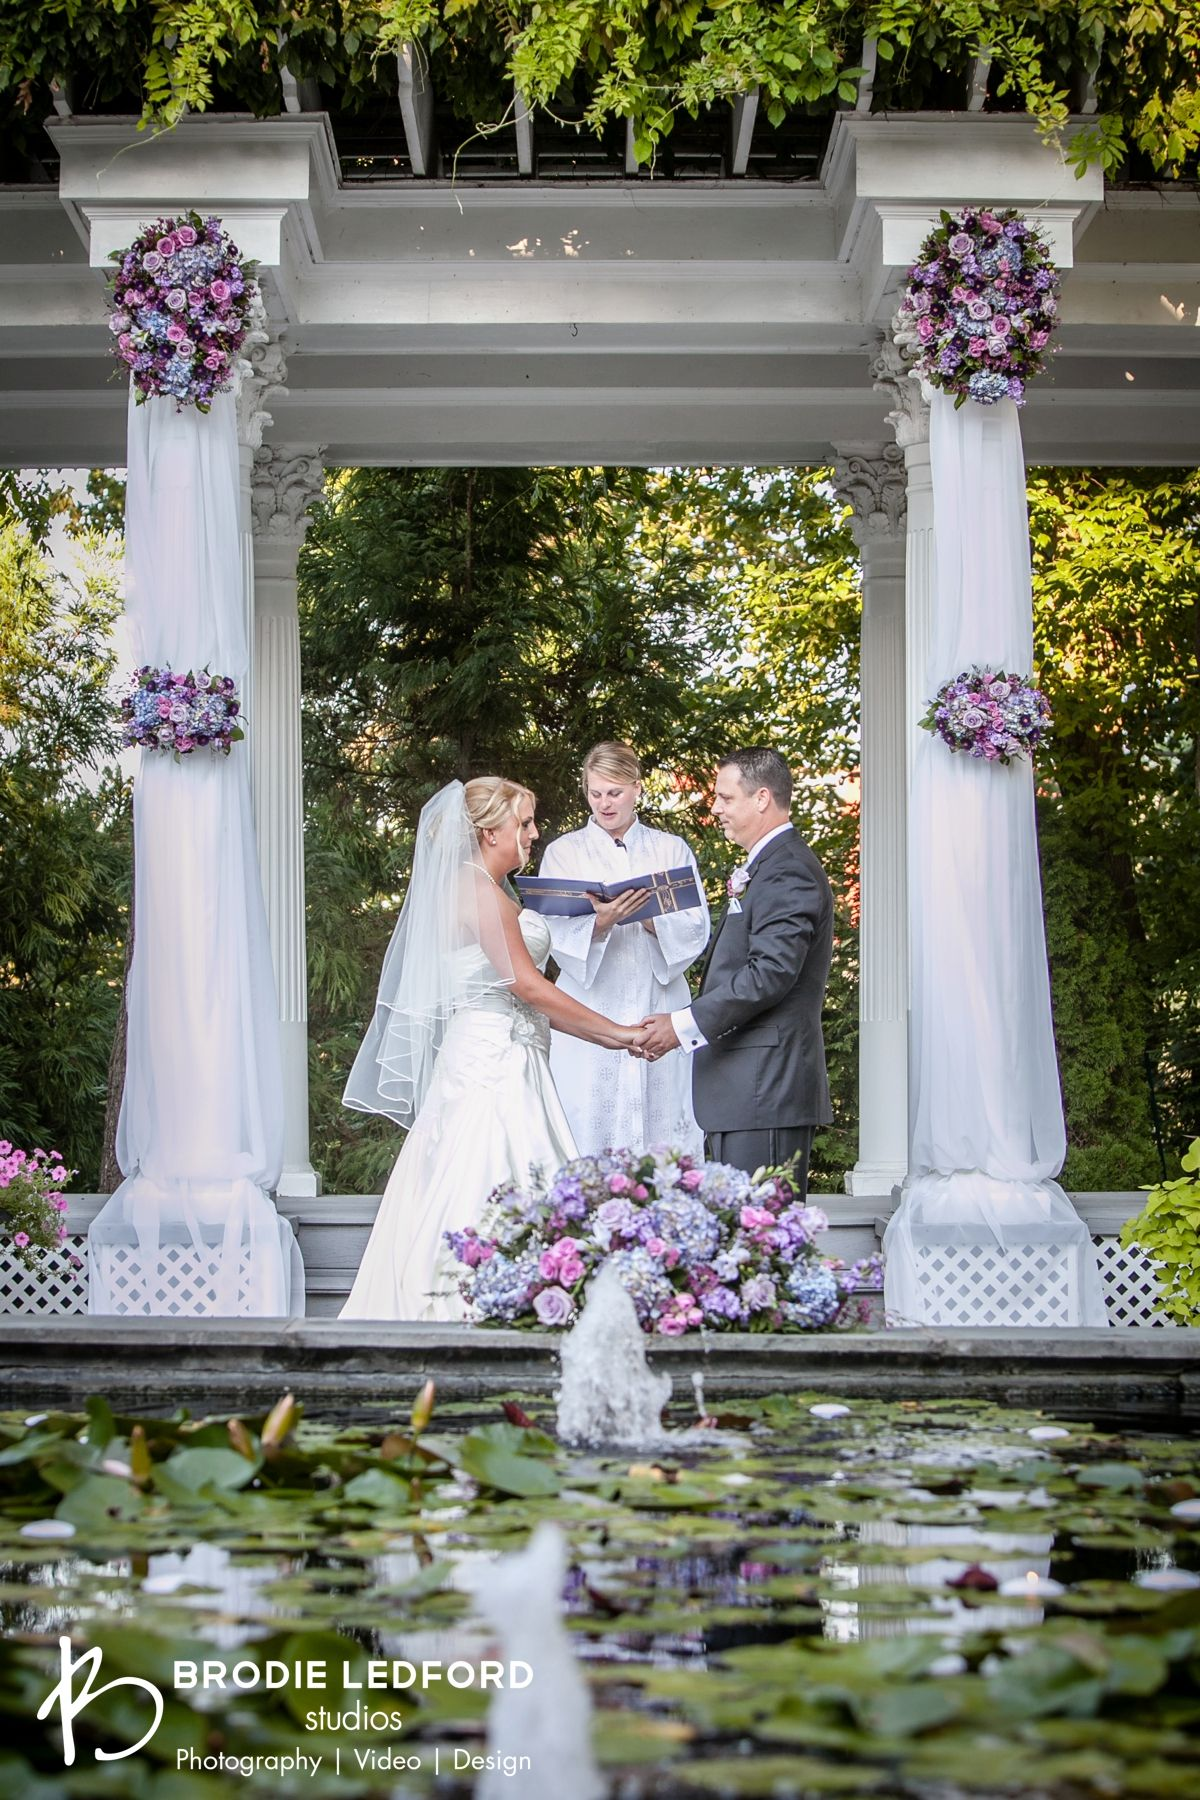 Videography Mansion Wedding Venues Photography Reception Shot Places Photos Pictures